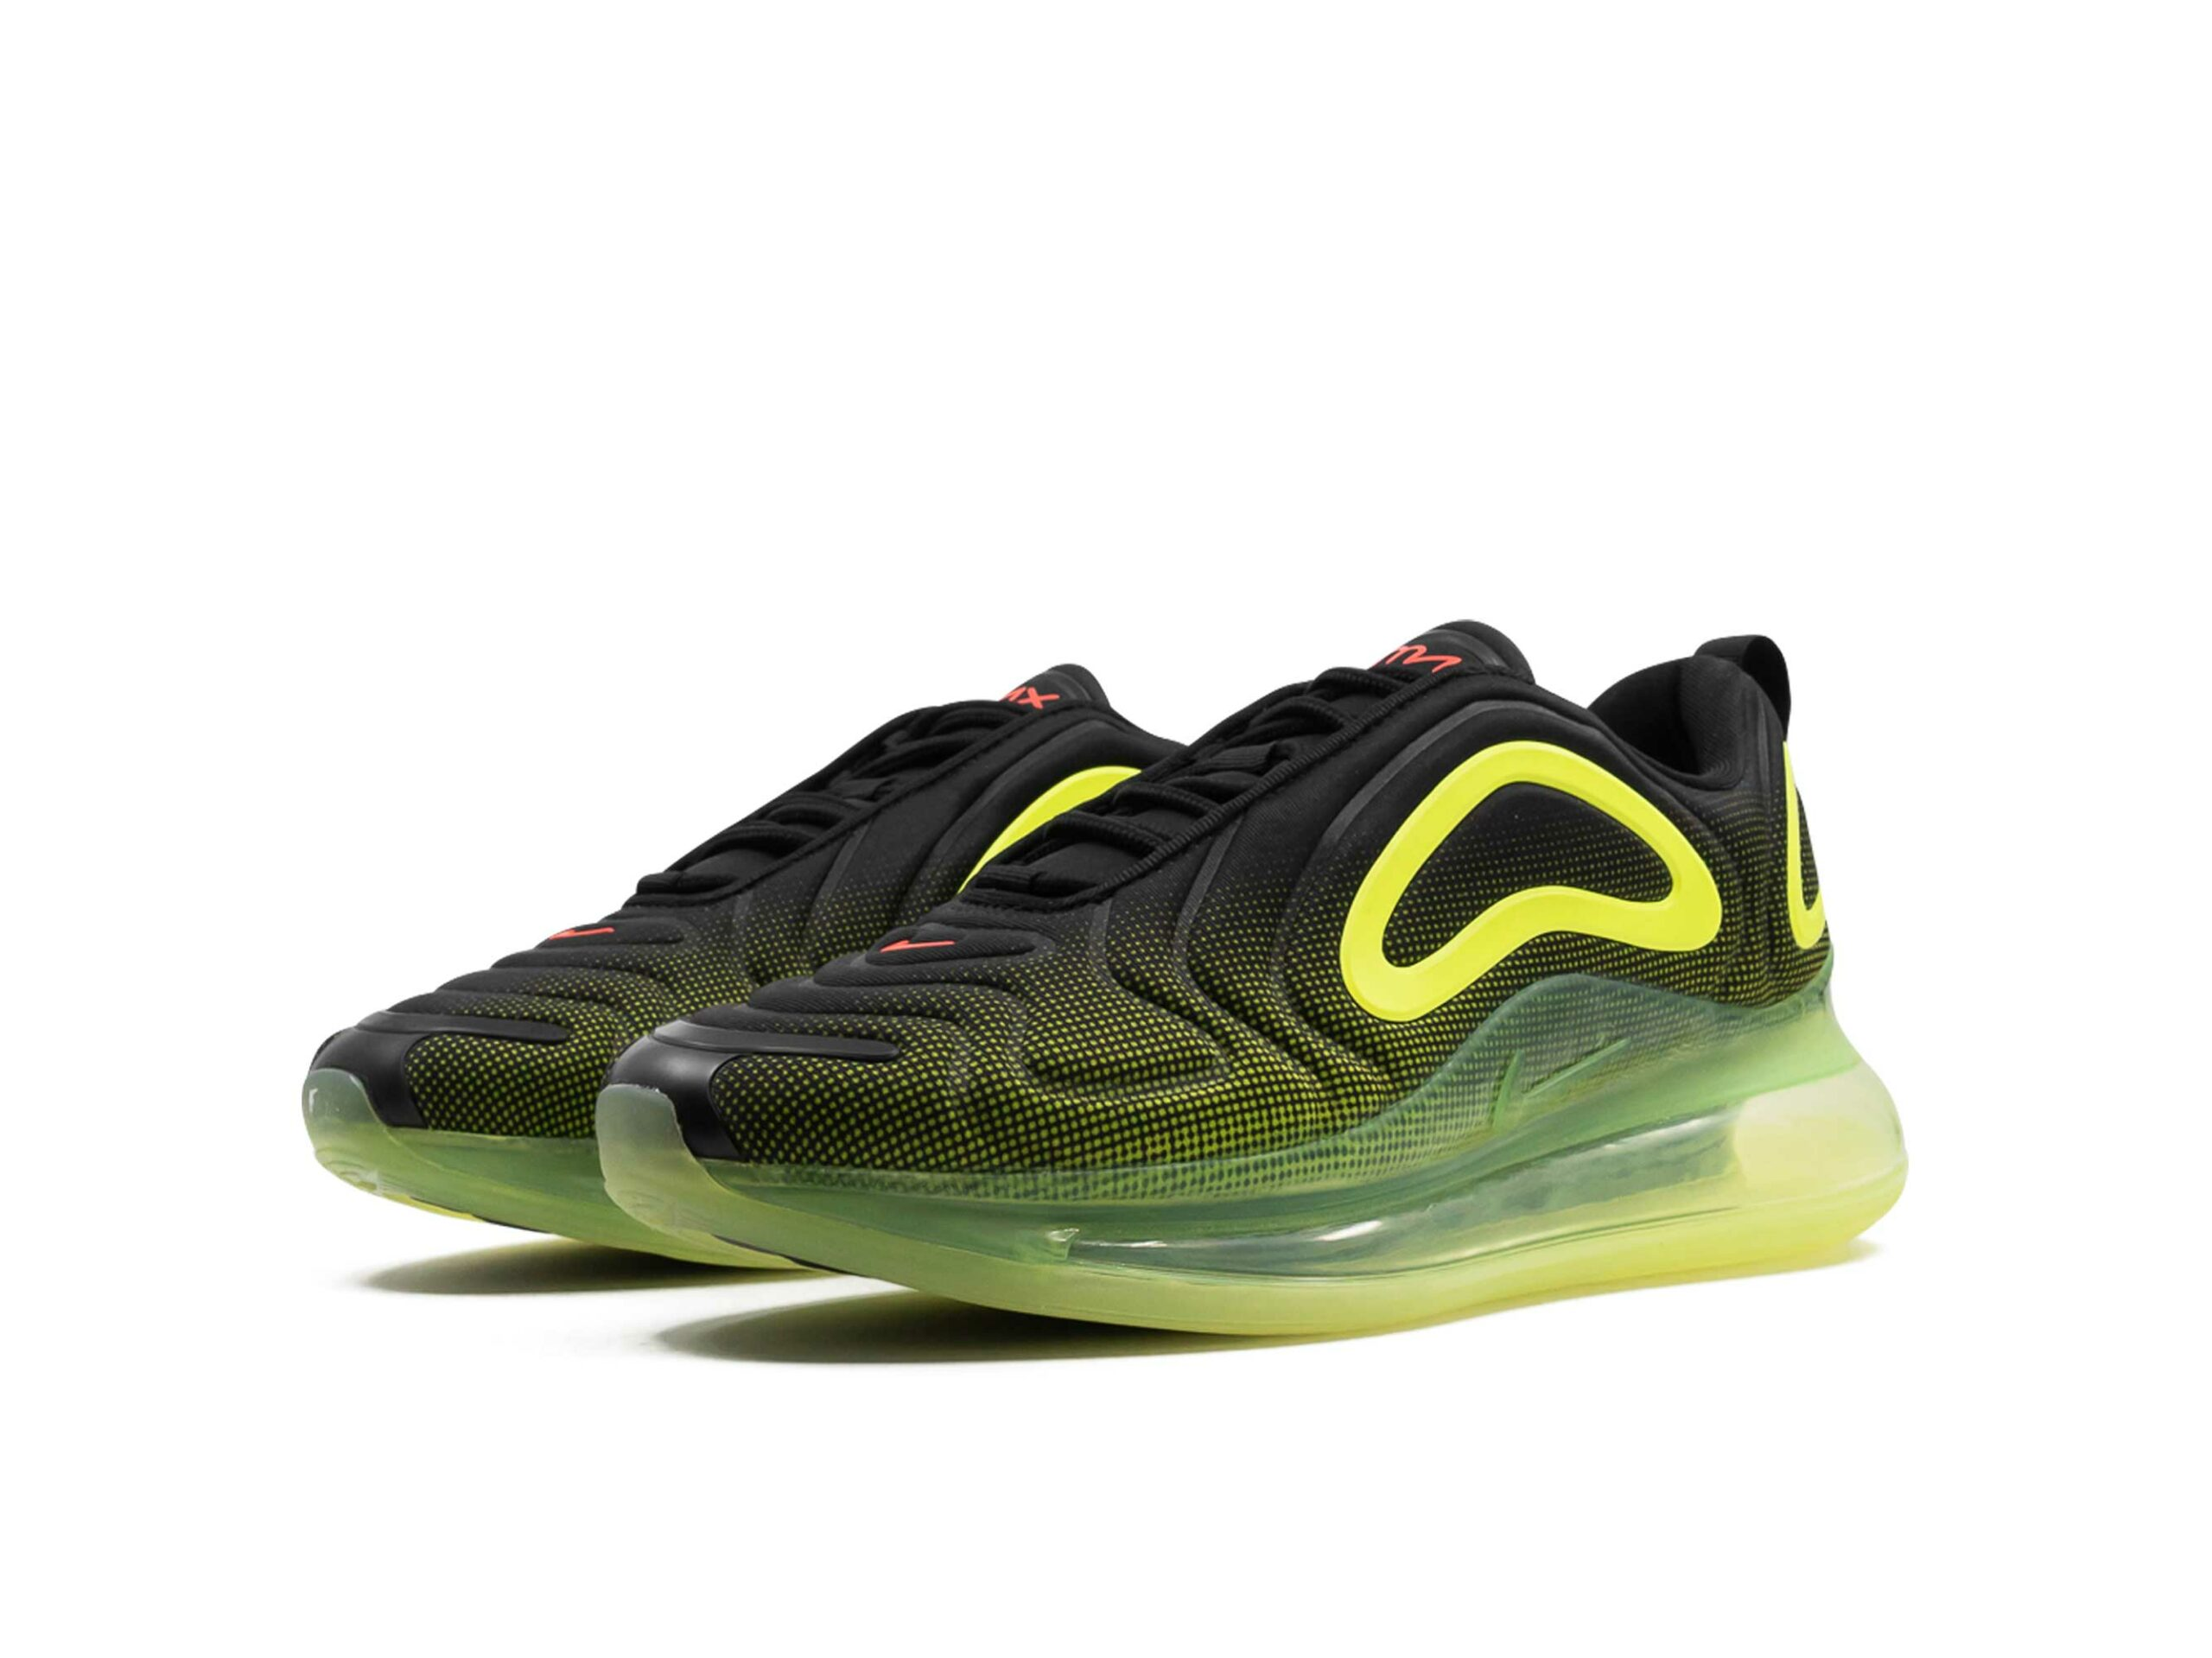 nike air max 720 retro future bright crimson volt AO2924_008 купить